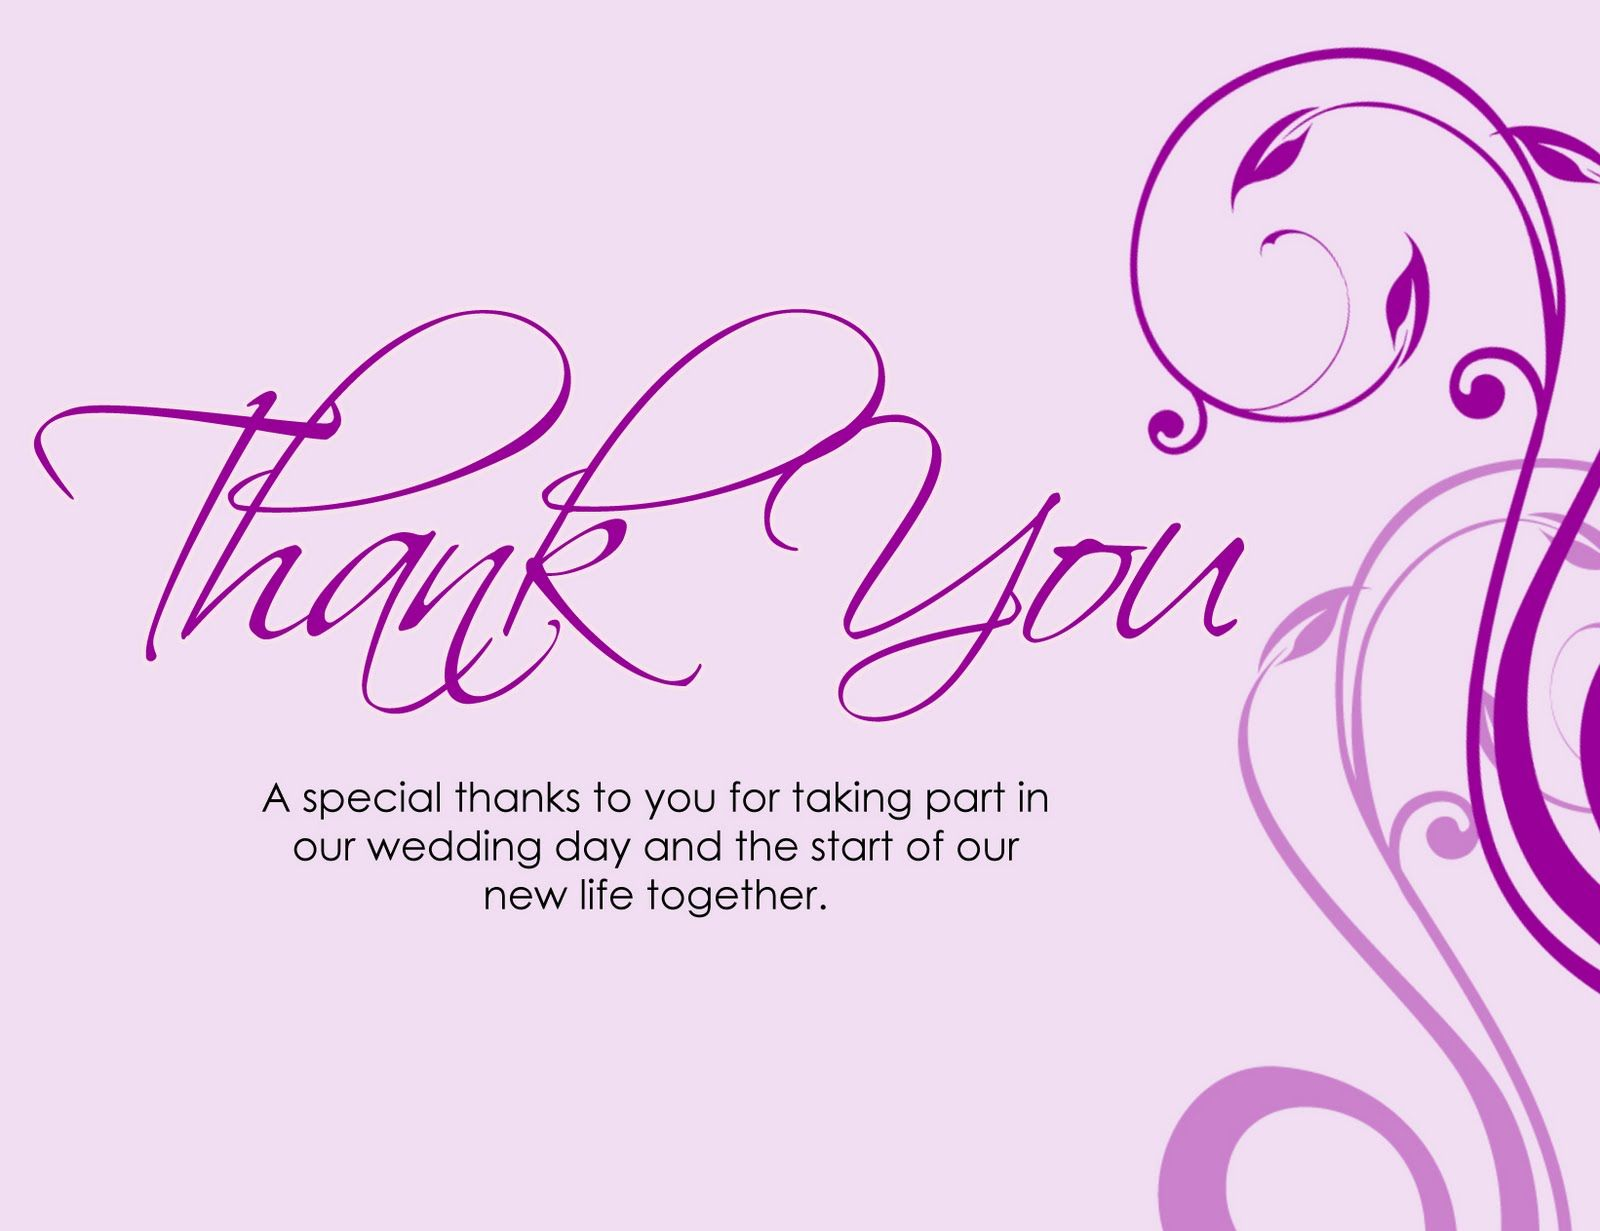 Wedding Anniversary Thank You Cards Wedding thank you